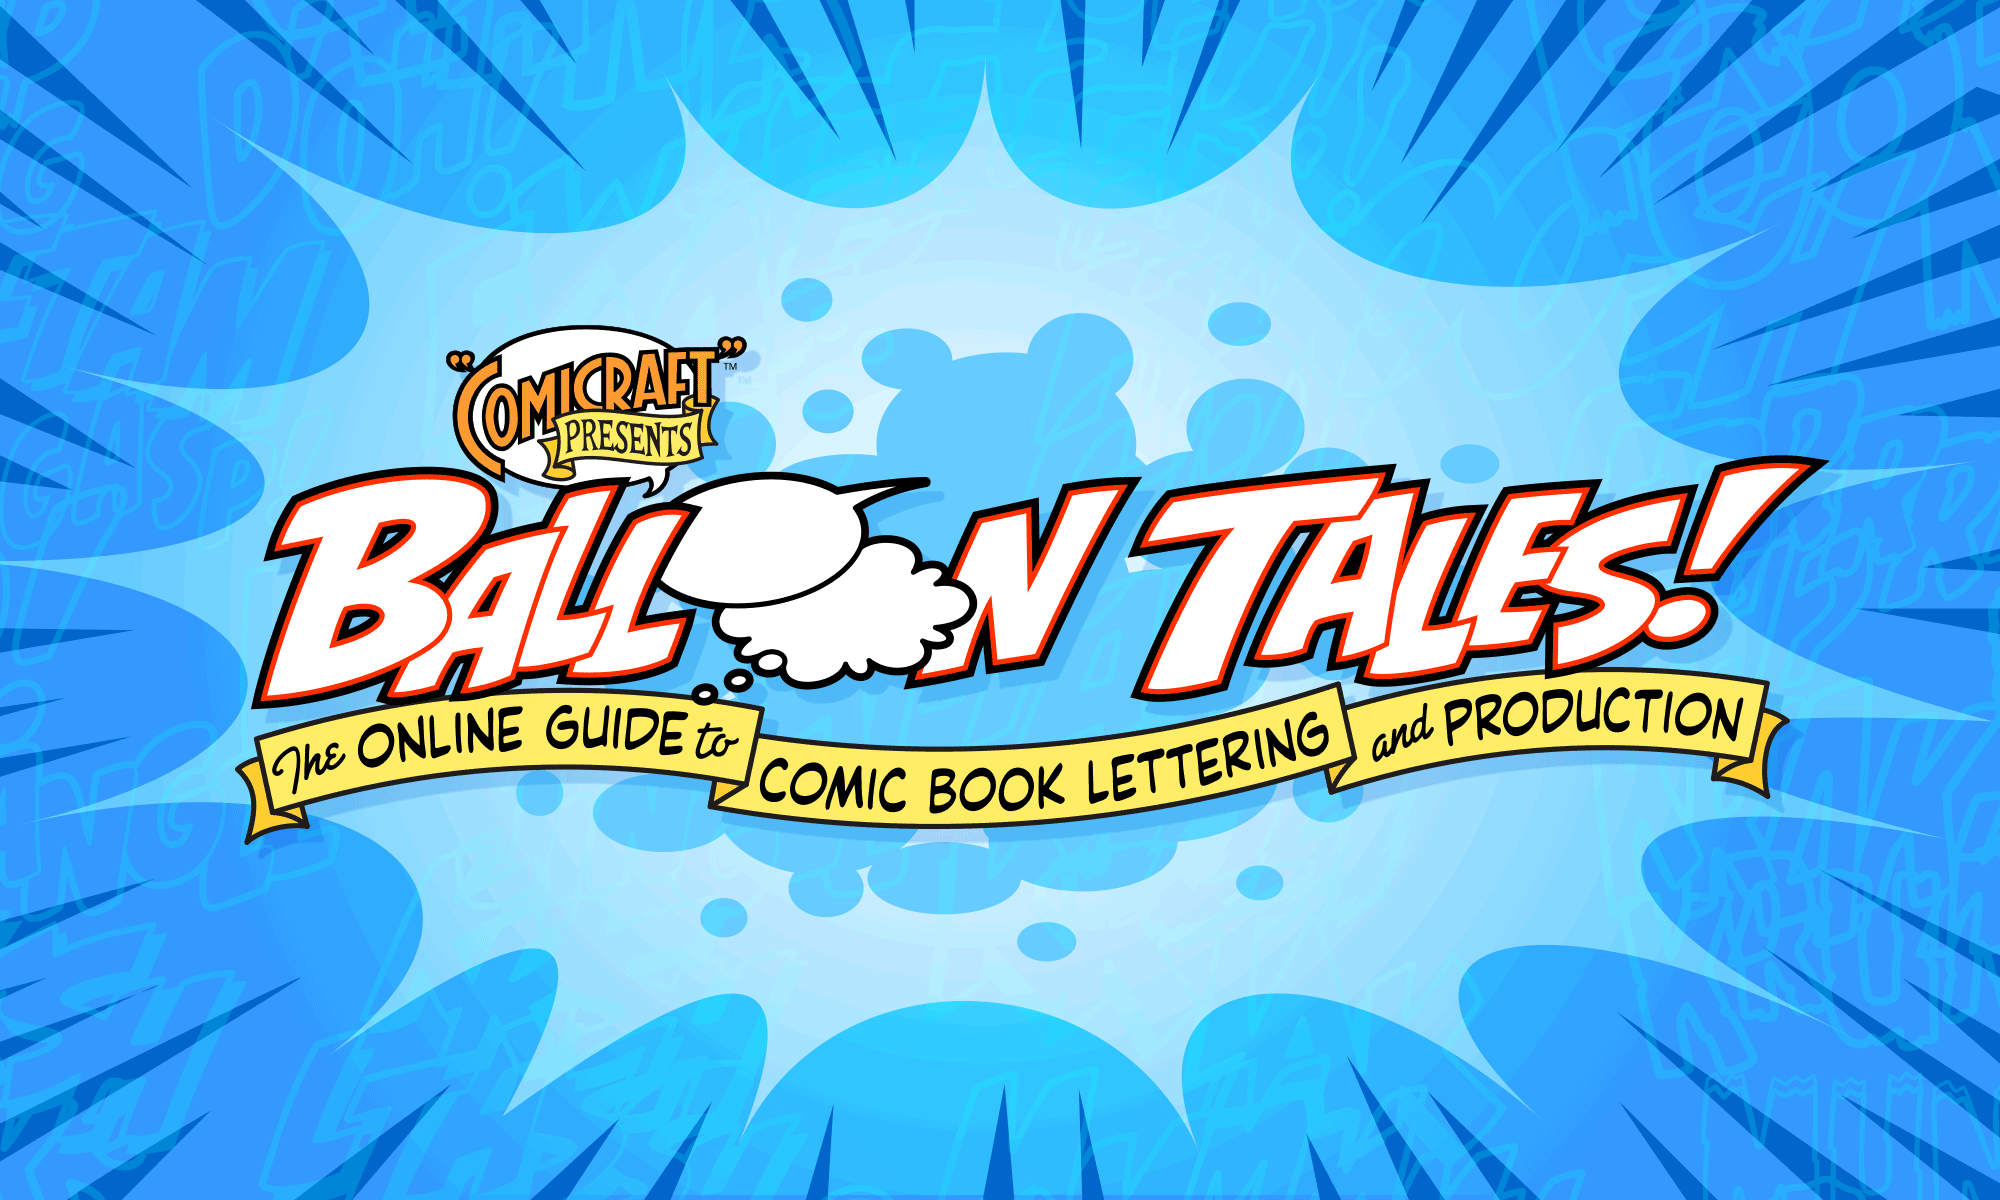 Balloon Tales